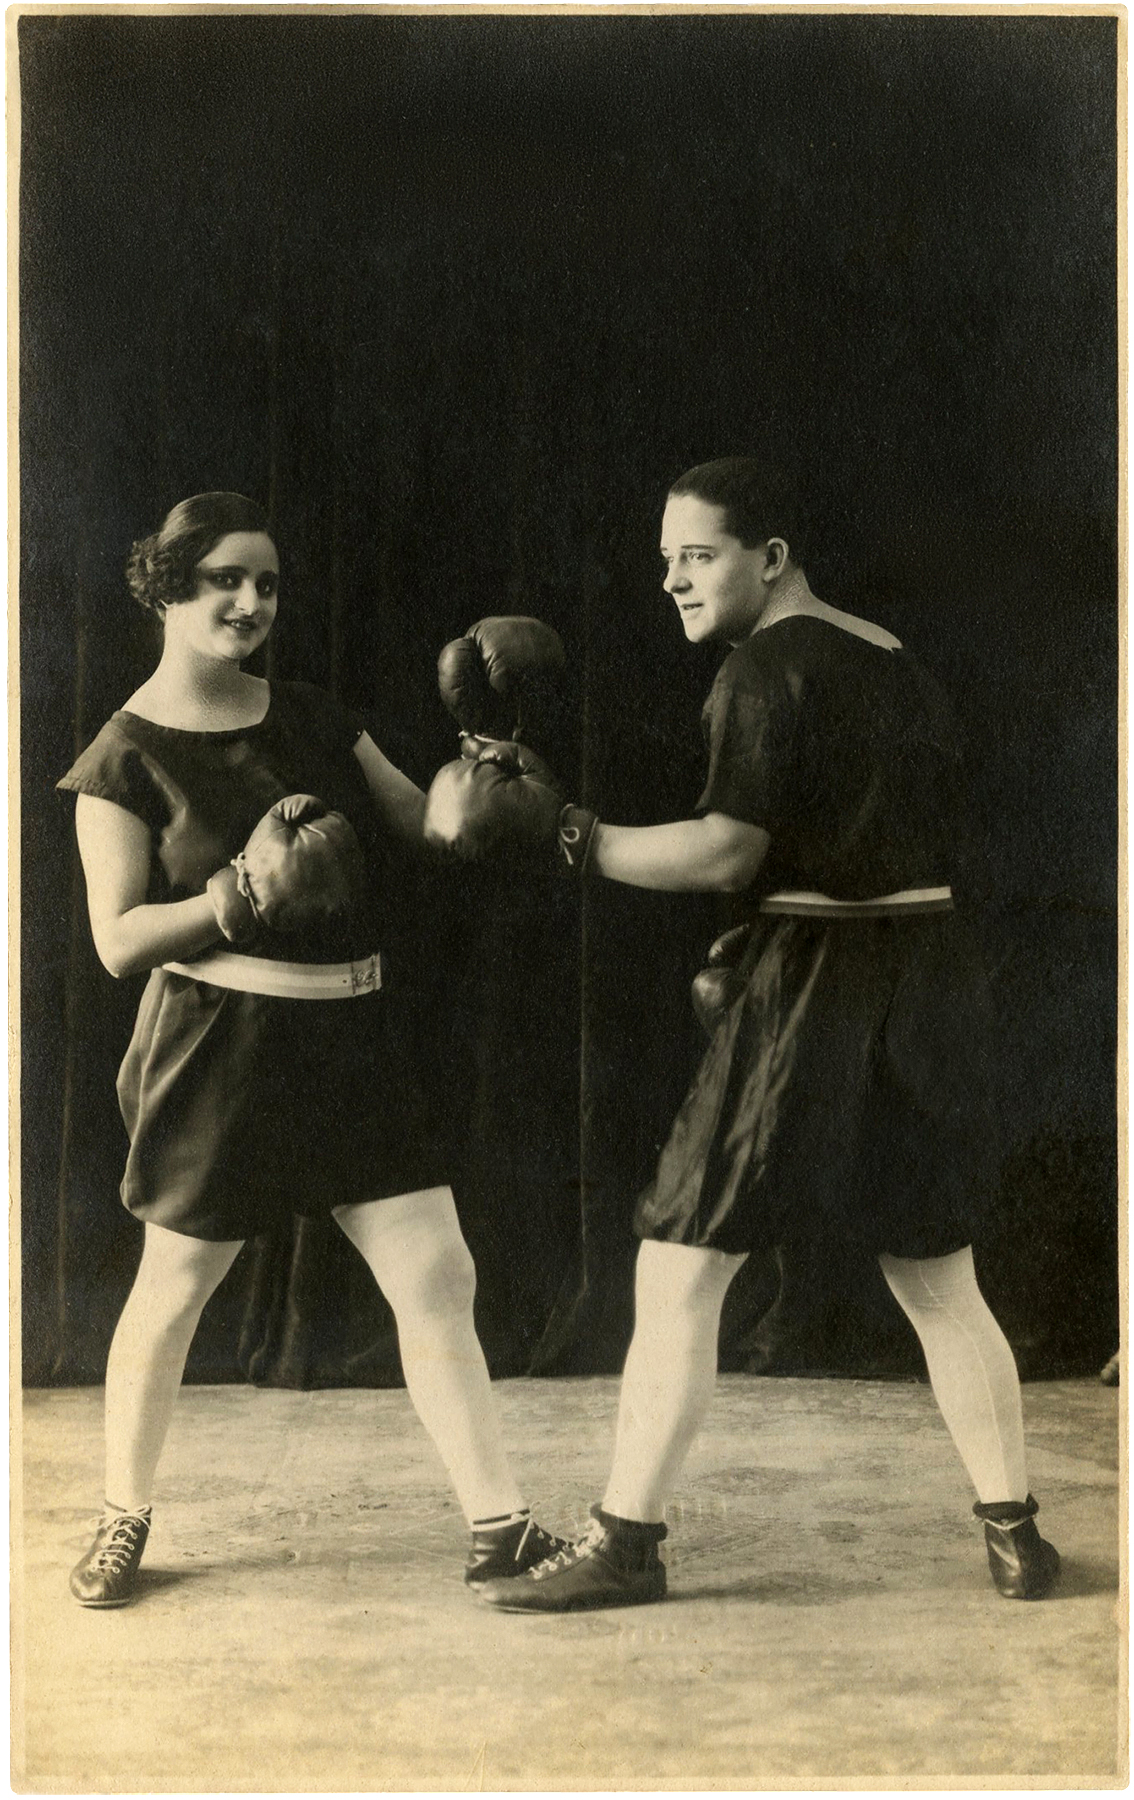 Vintage Man And Woman Boxing Photo  Funny!  The Graphics